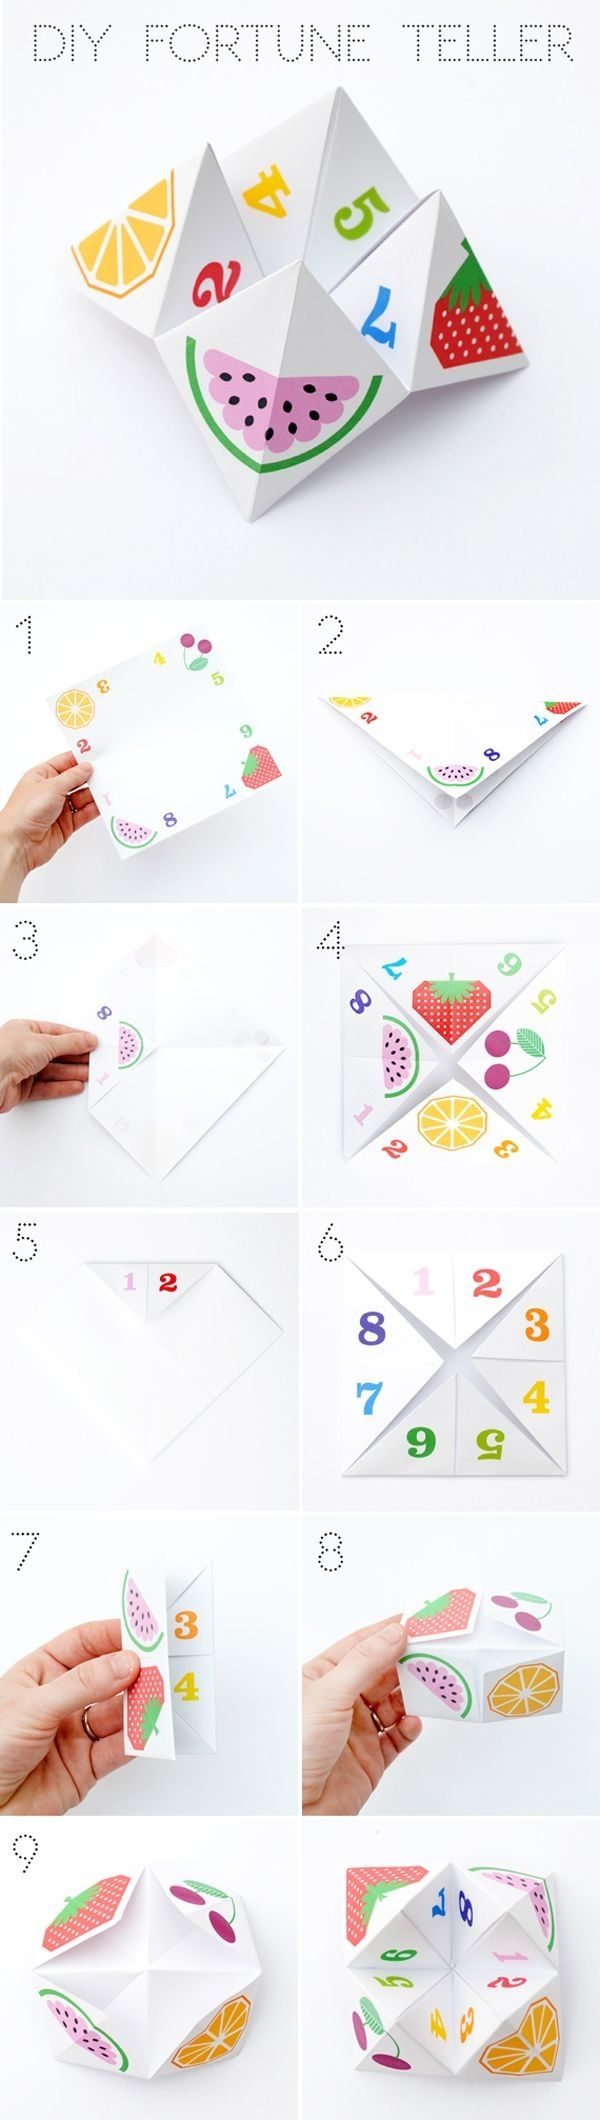 Origami Fortune Teller by blanche